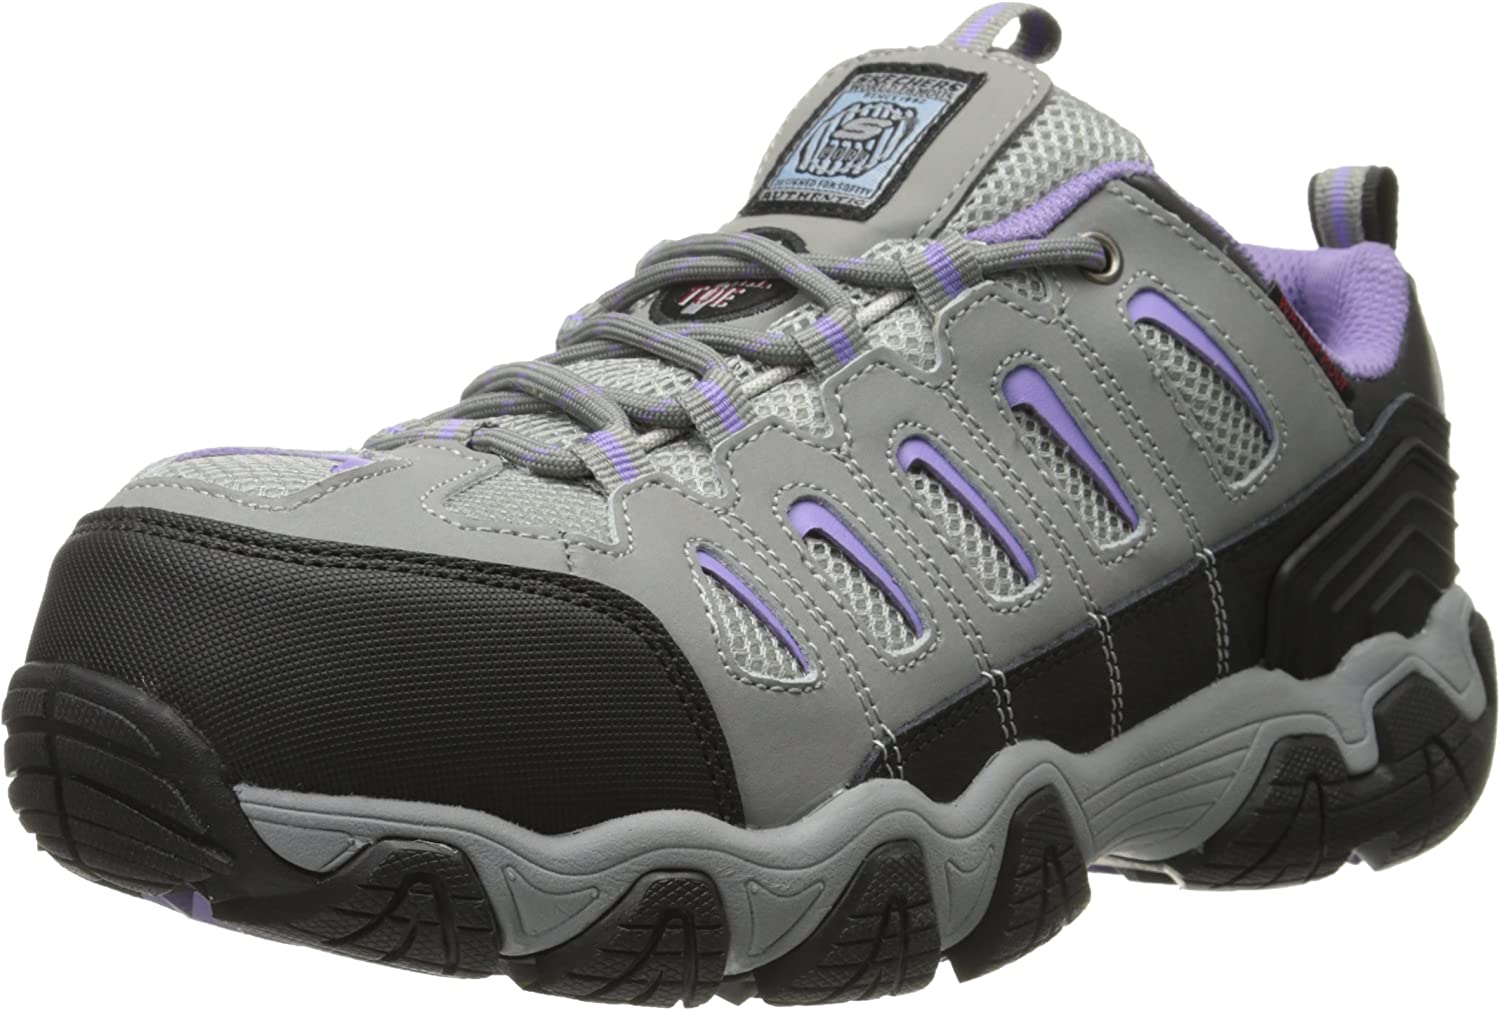 Skechers for Work Blais-Athol Steel Toe Hiking shoes